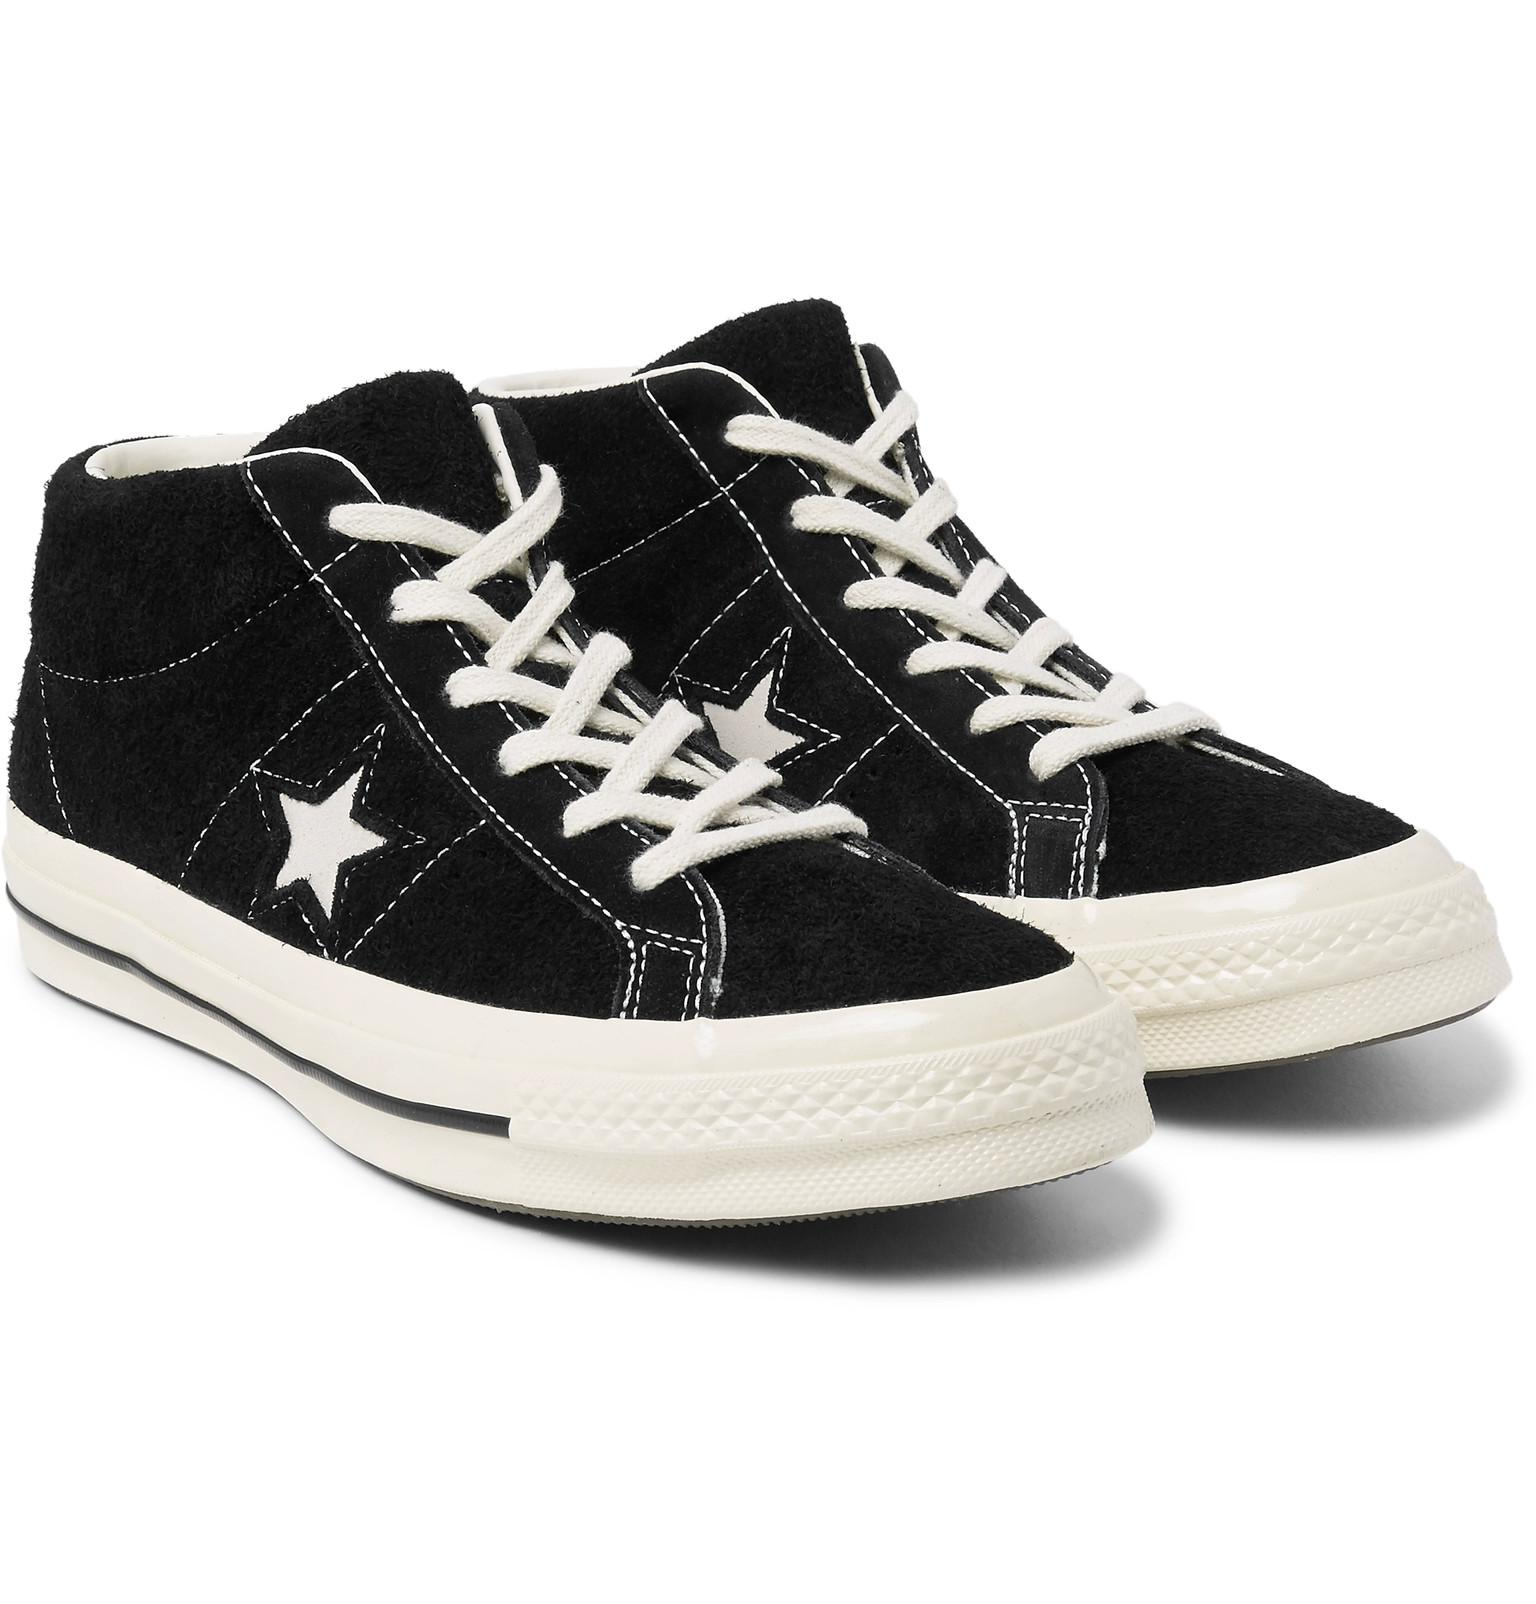 bbd2d3b1b45cd7 Converse One Star  74 Vintage Suede Sneakers in Black for Men - Lyst